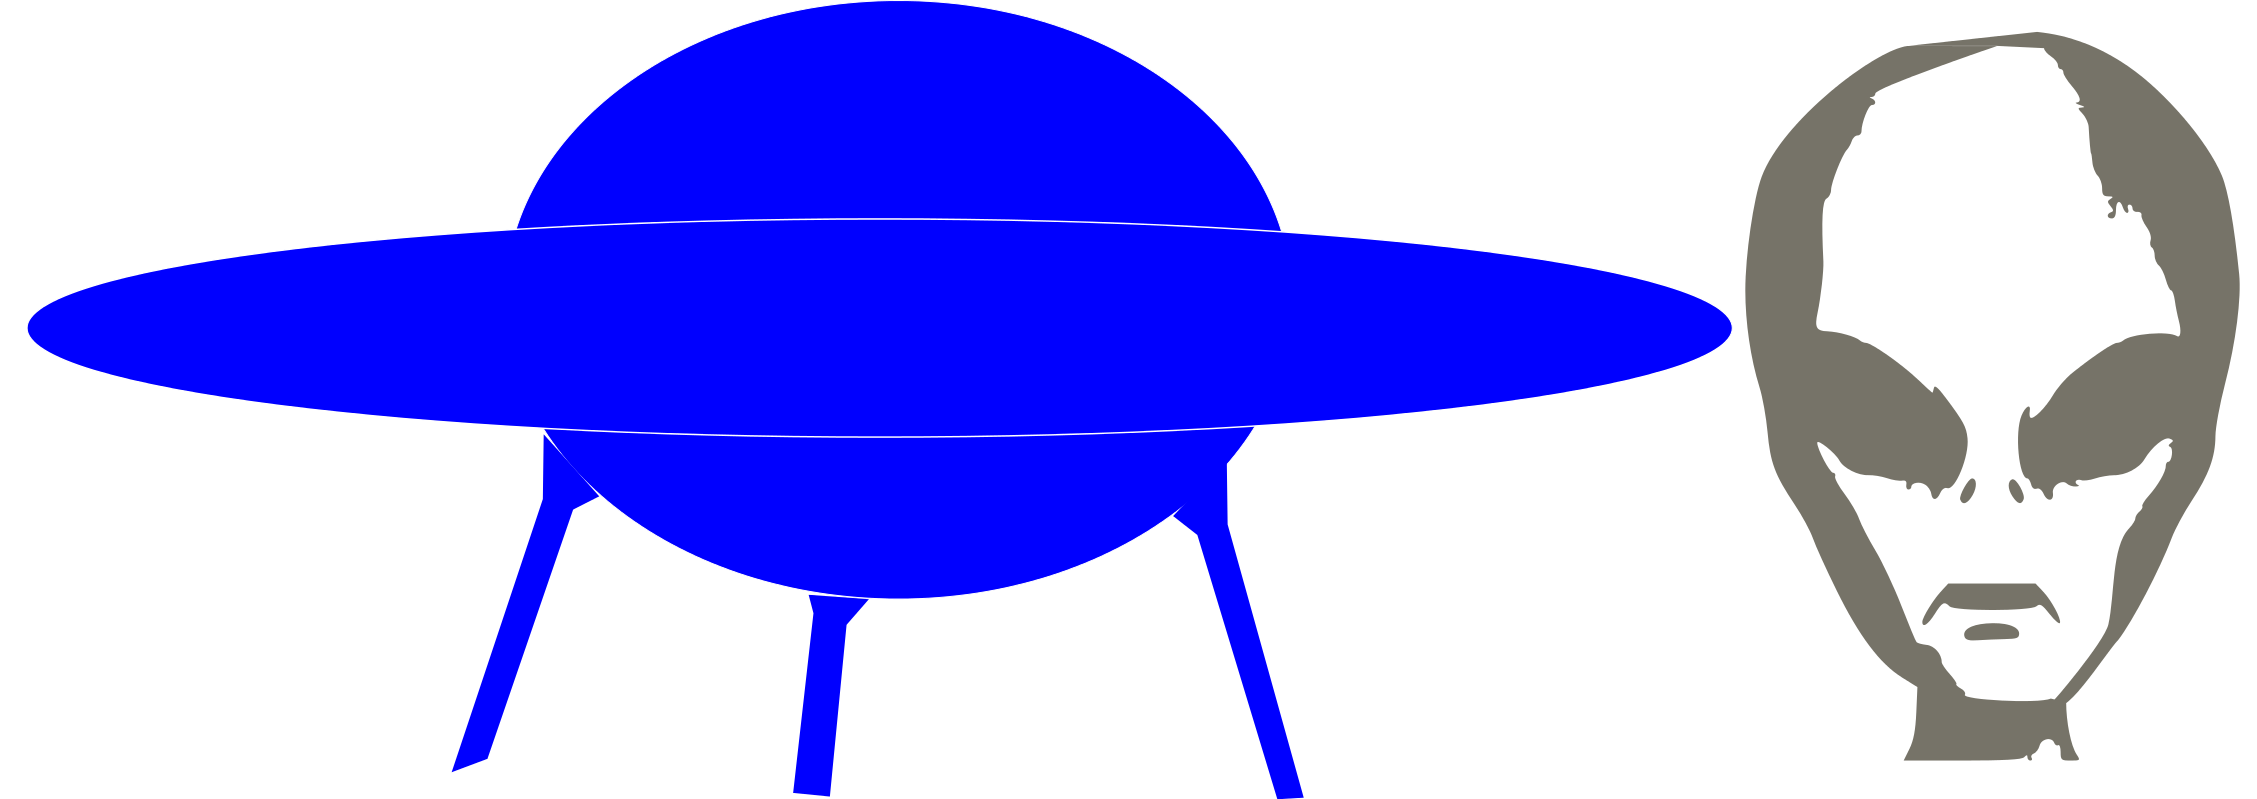 Icon svg wikimedia commons. Ufo clipart file